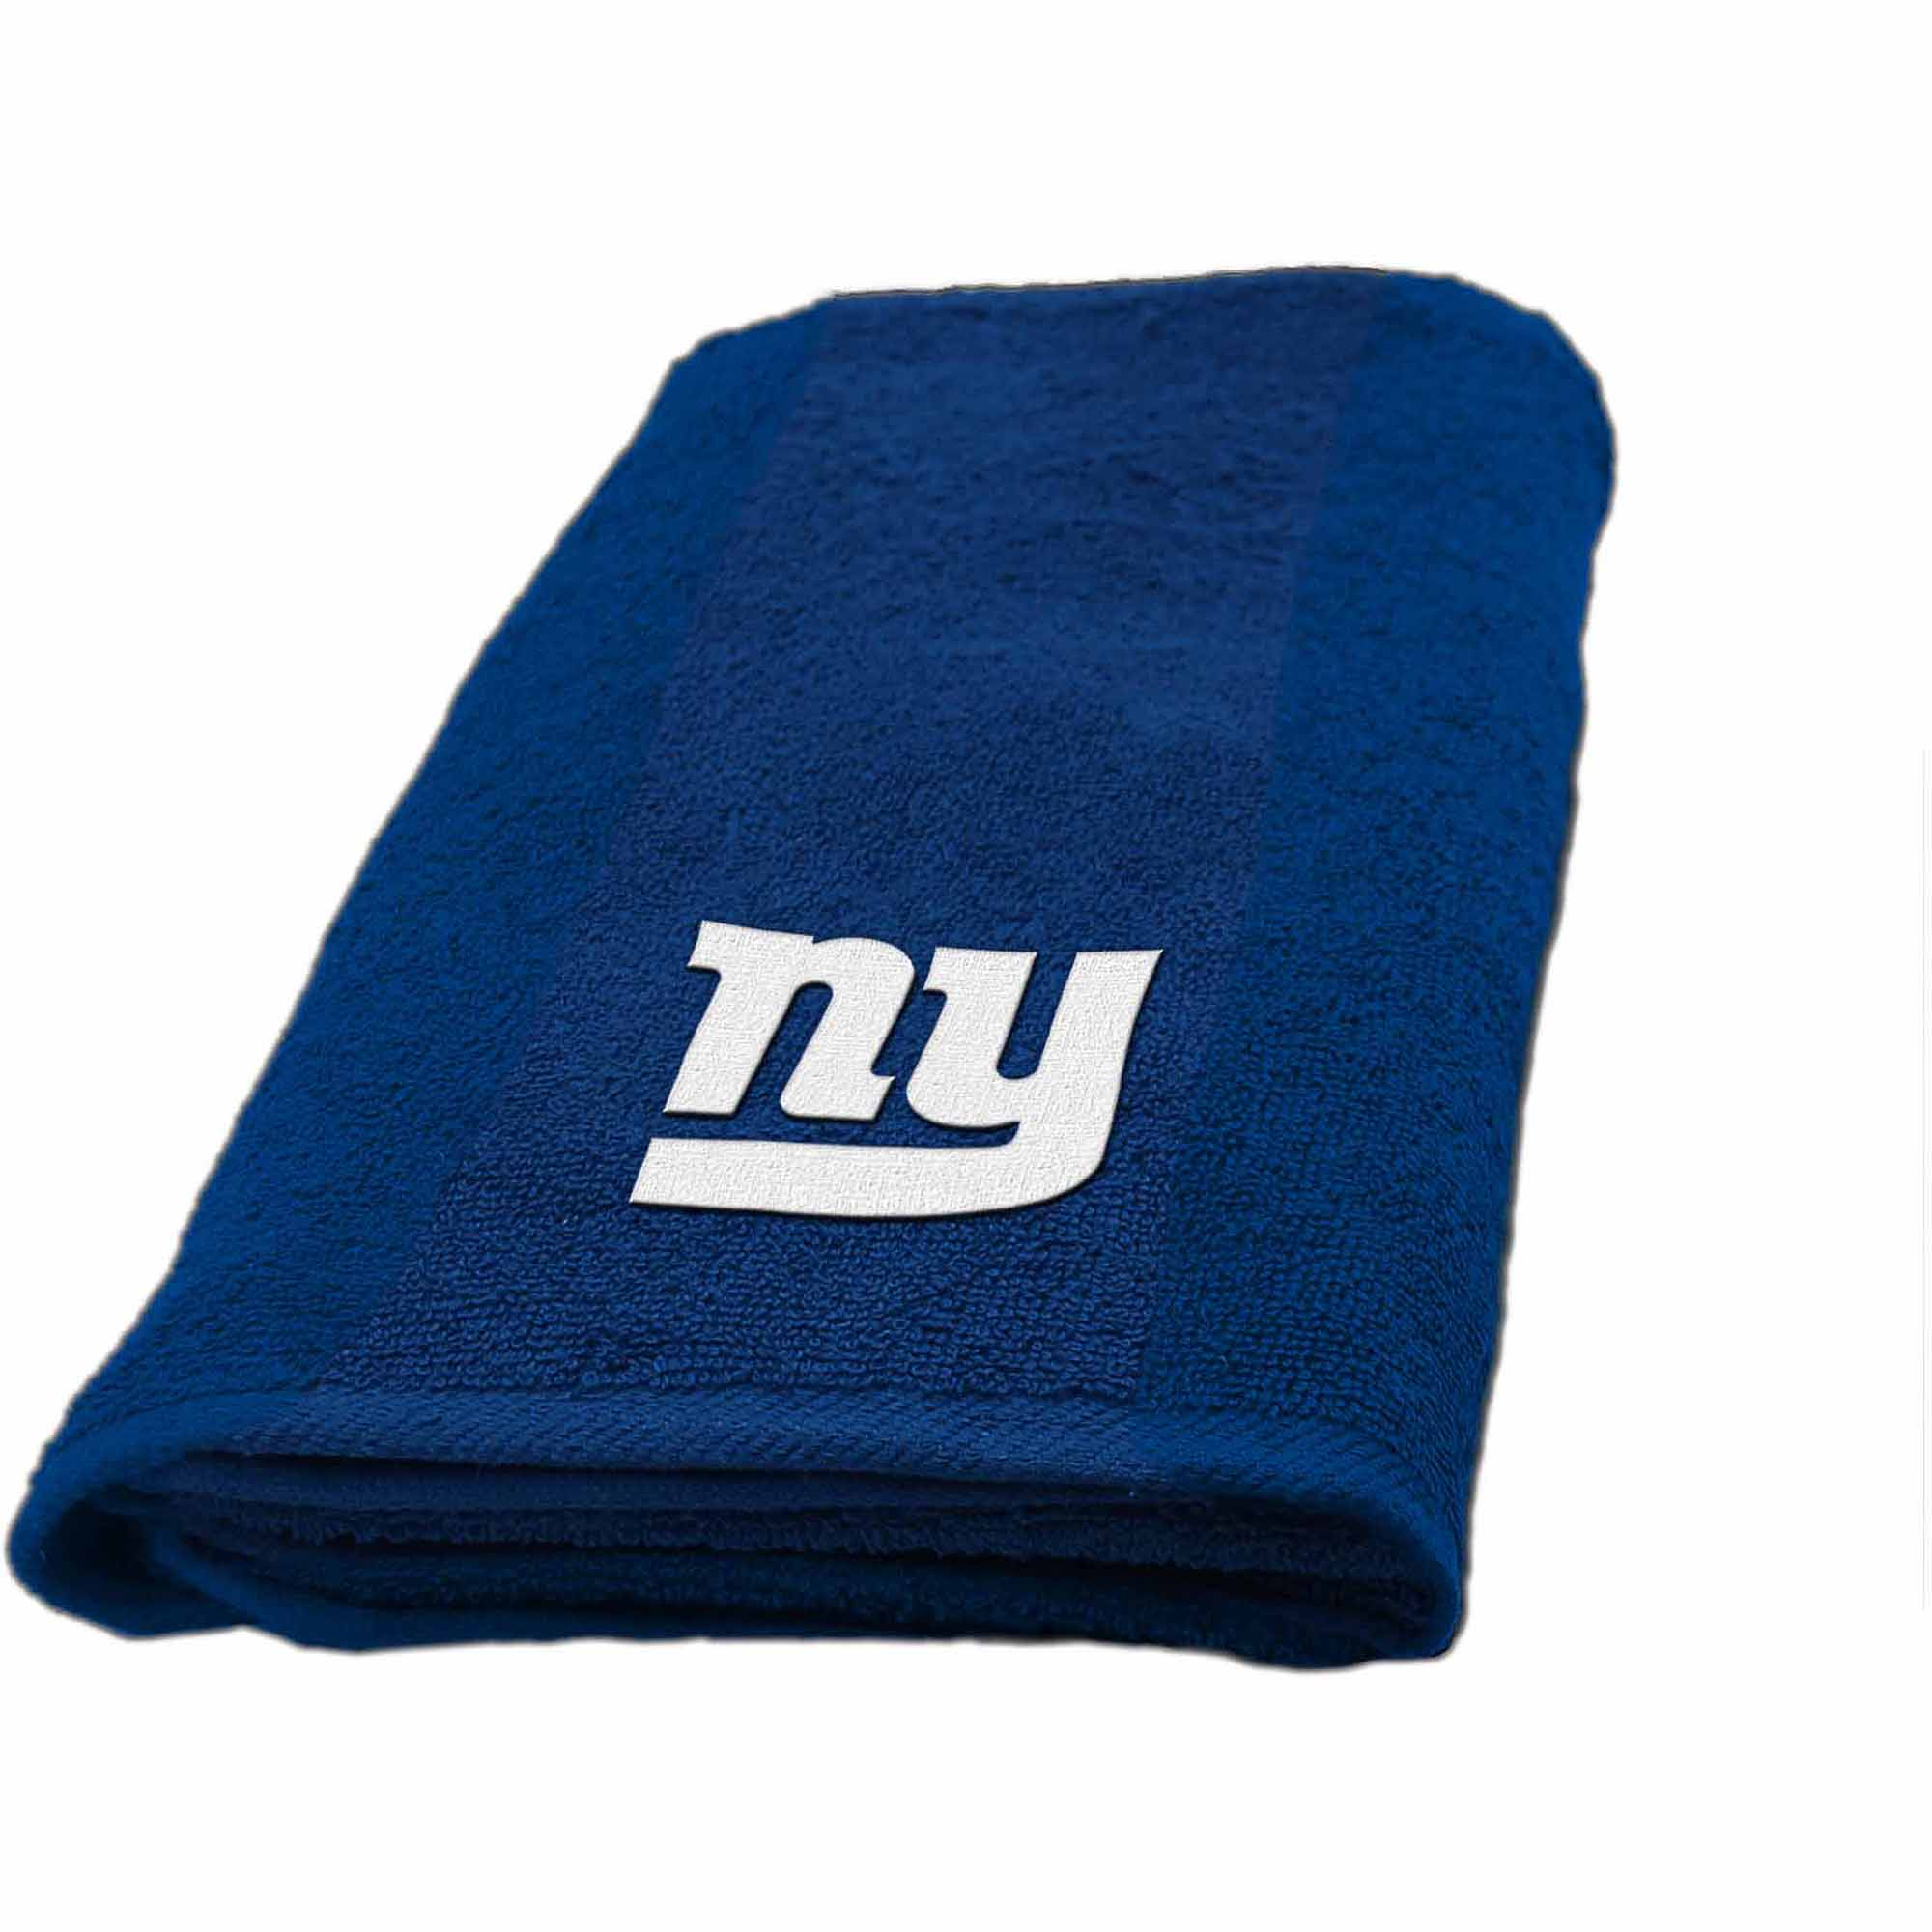 NFL New York Giants Hand Towel